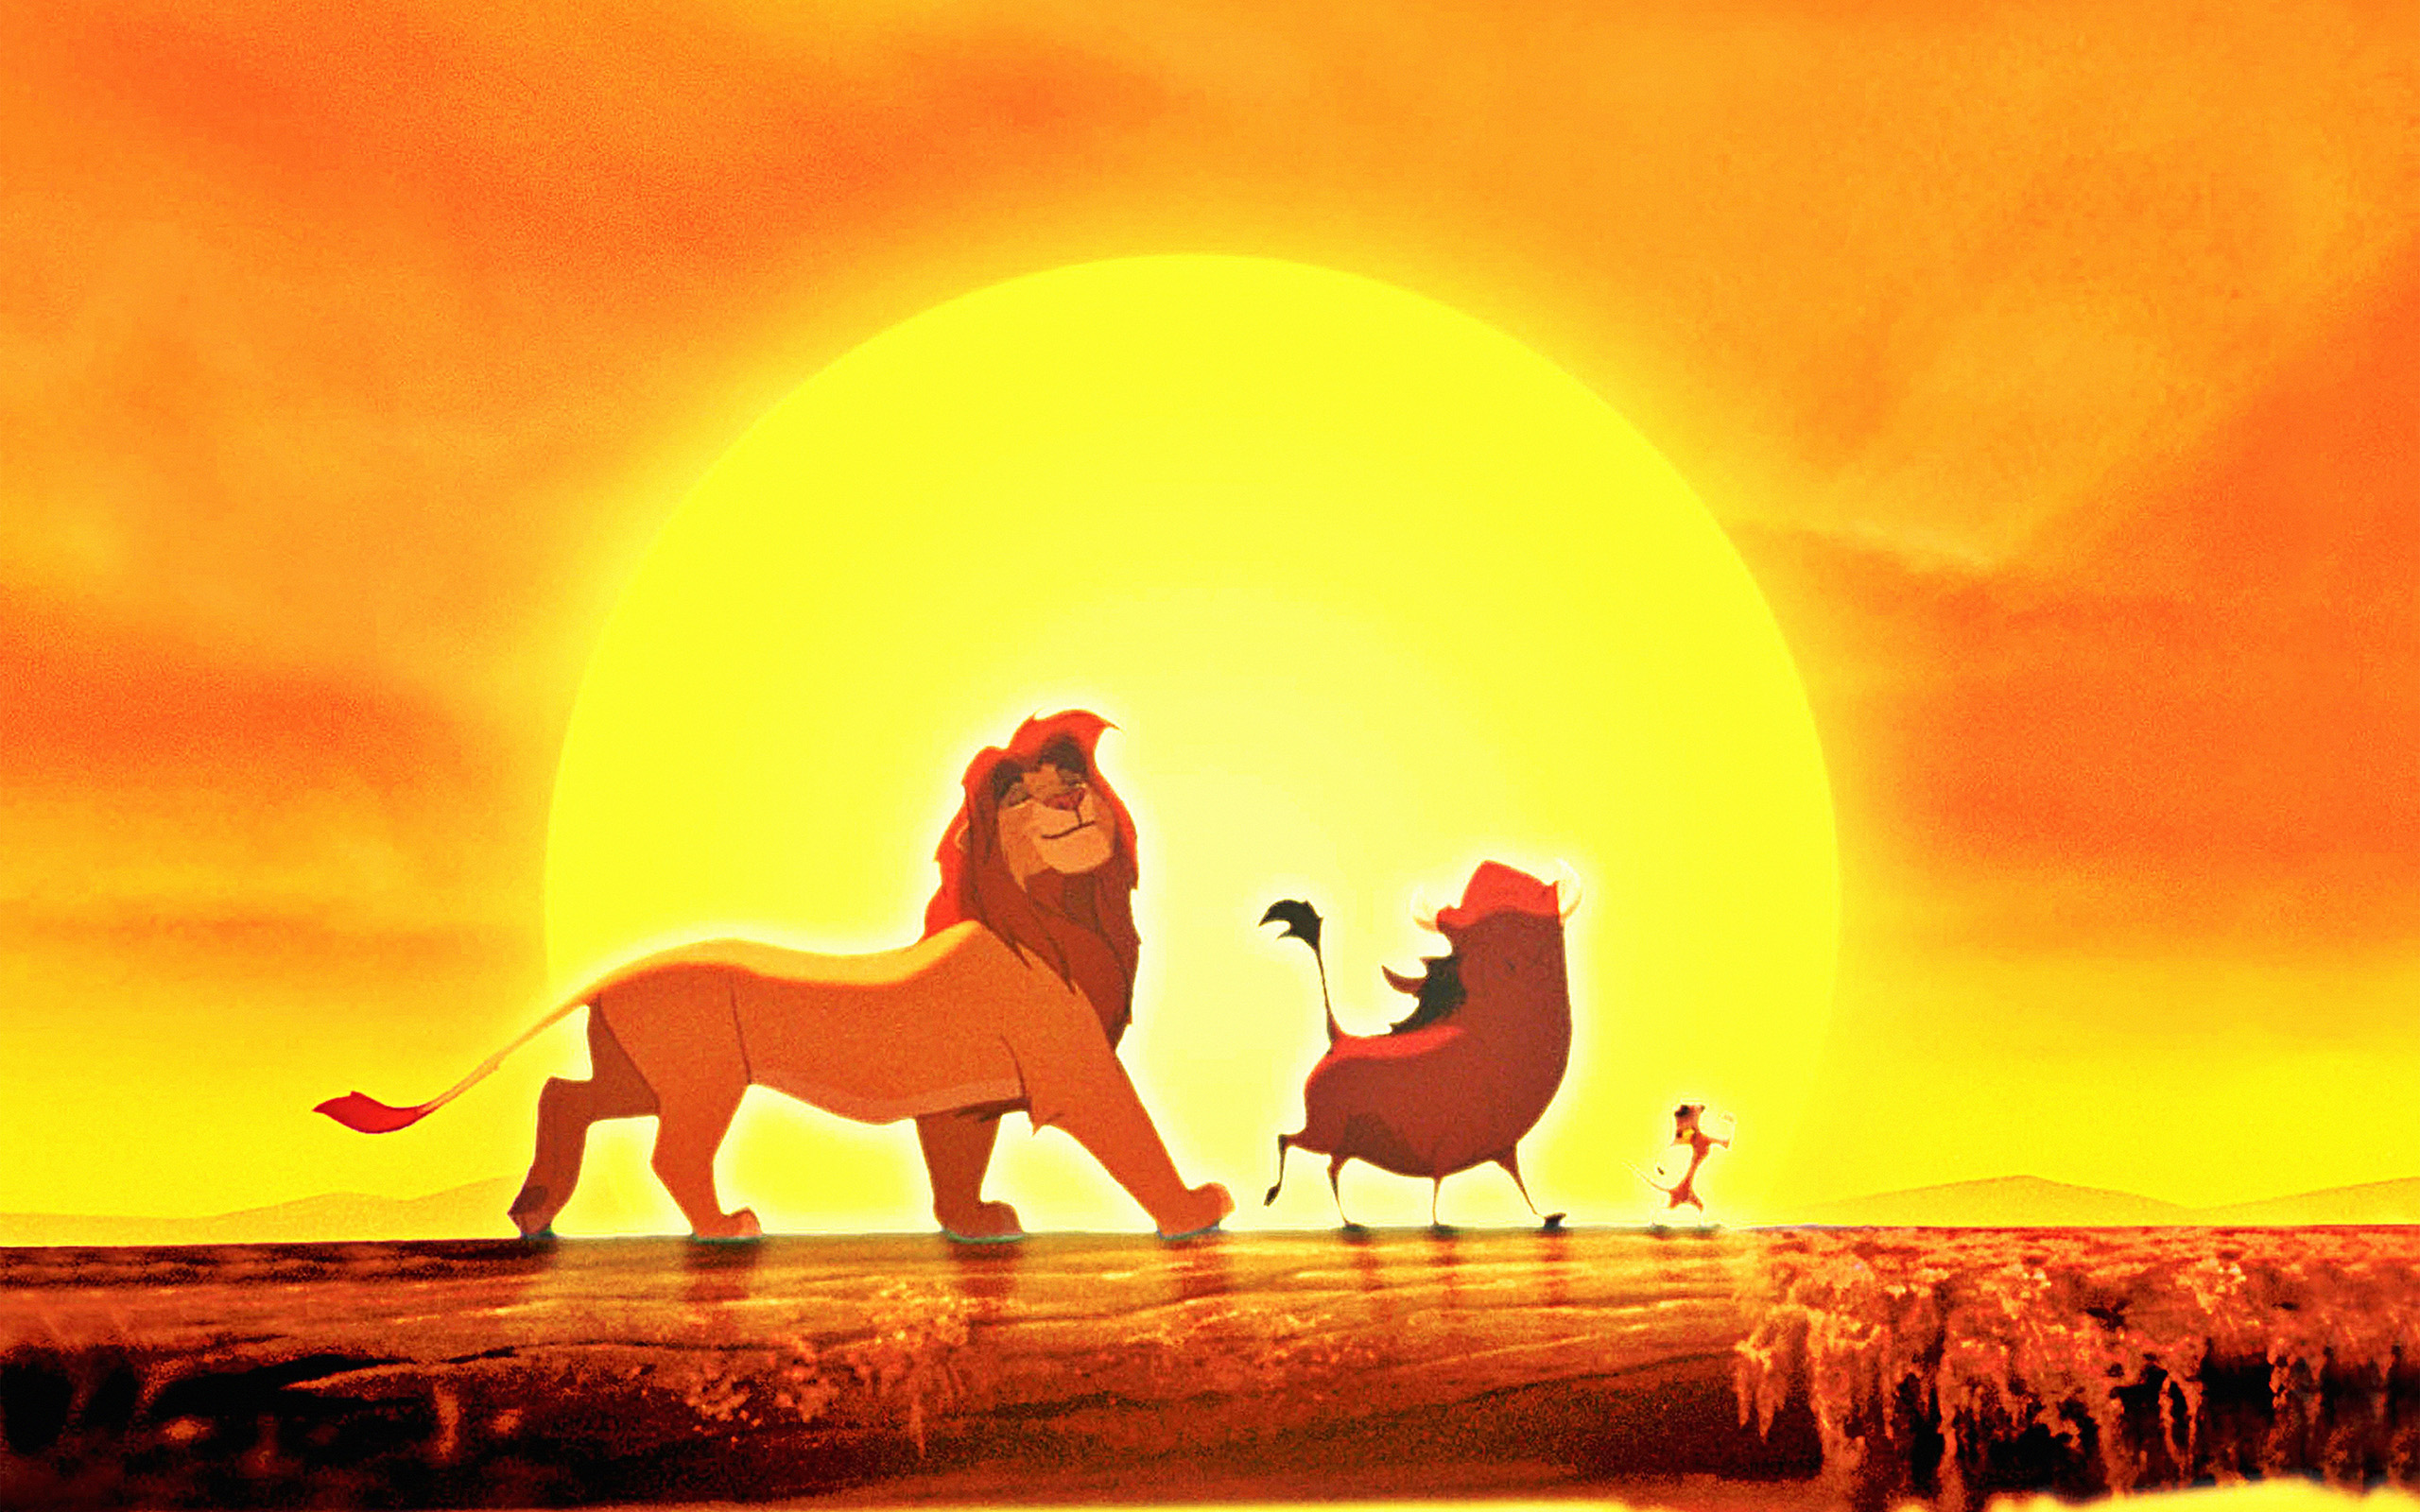 archetype essay lion king View essay - archetypes in the lion king essay from theater 1301 at  university of texas, brownsville the lion king is a story containing numerous  prime.